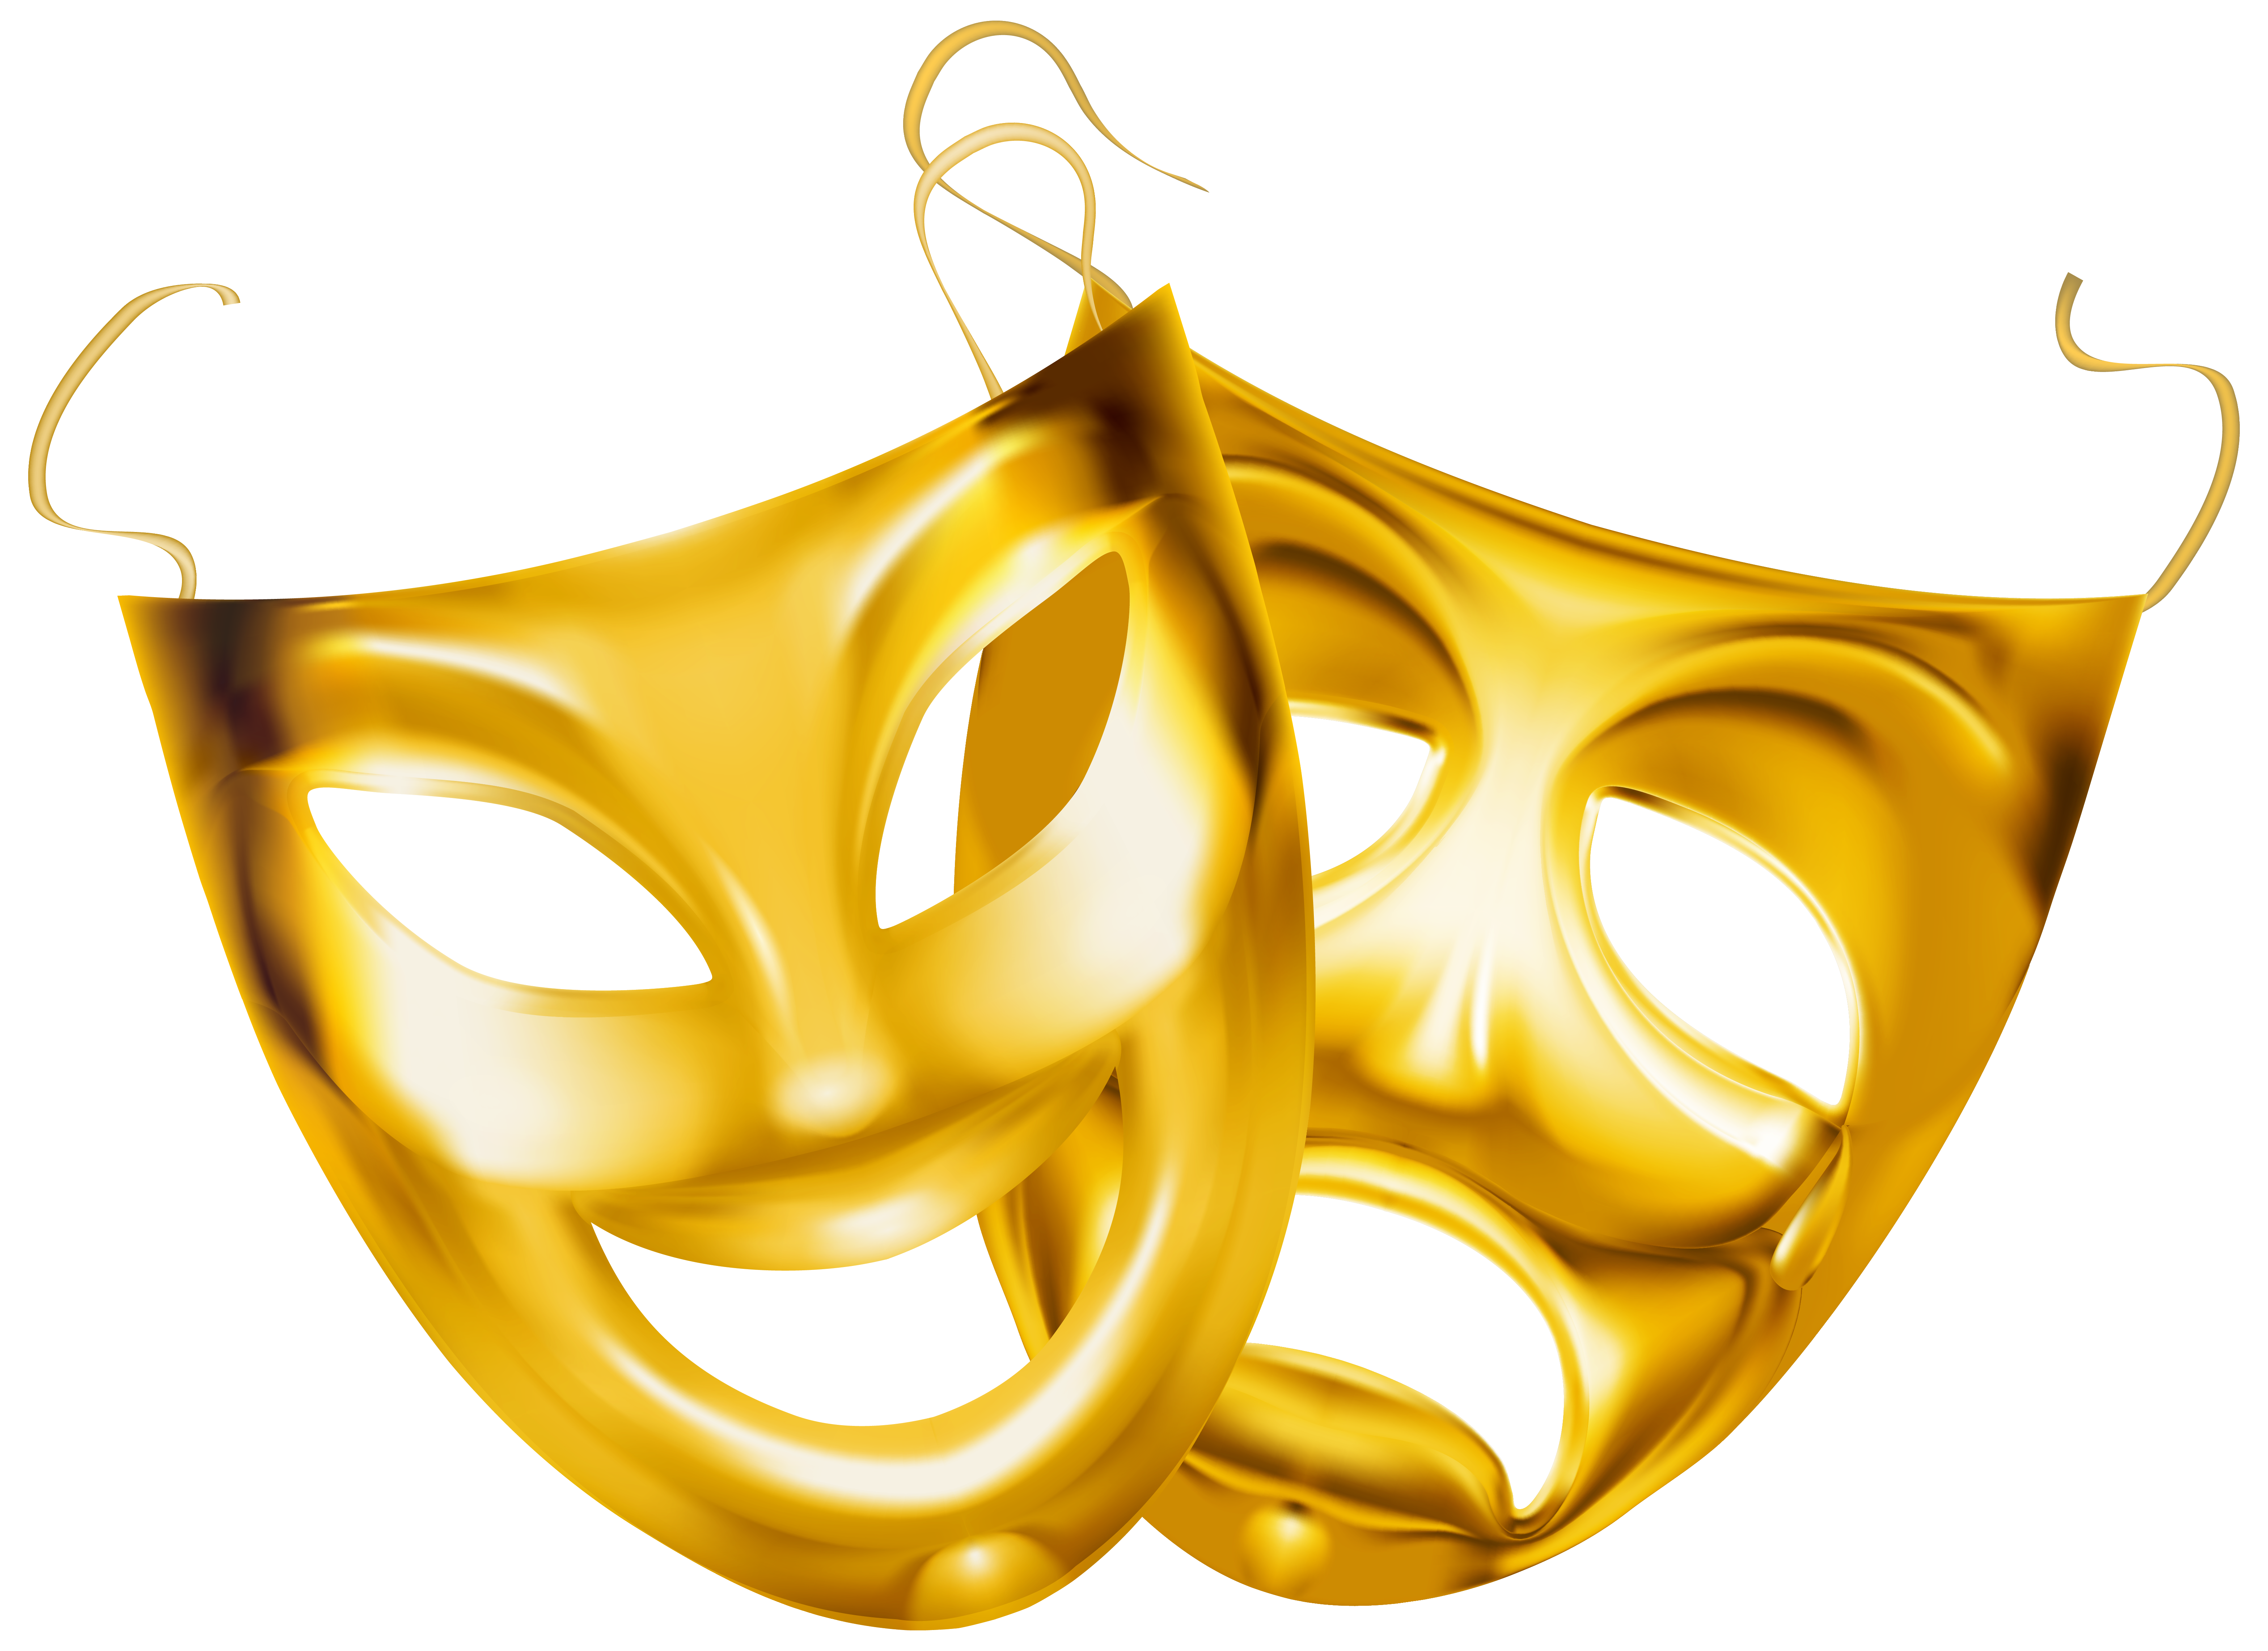 Gold Theater Masks PNG Clipart Image.